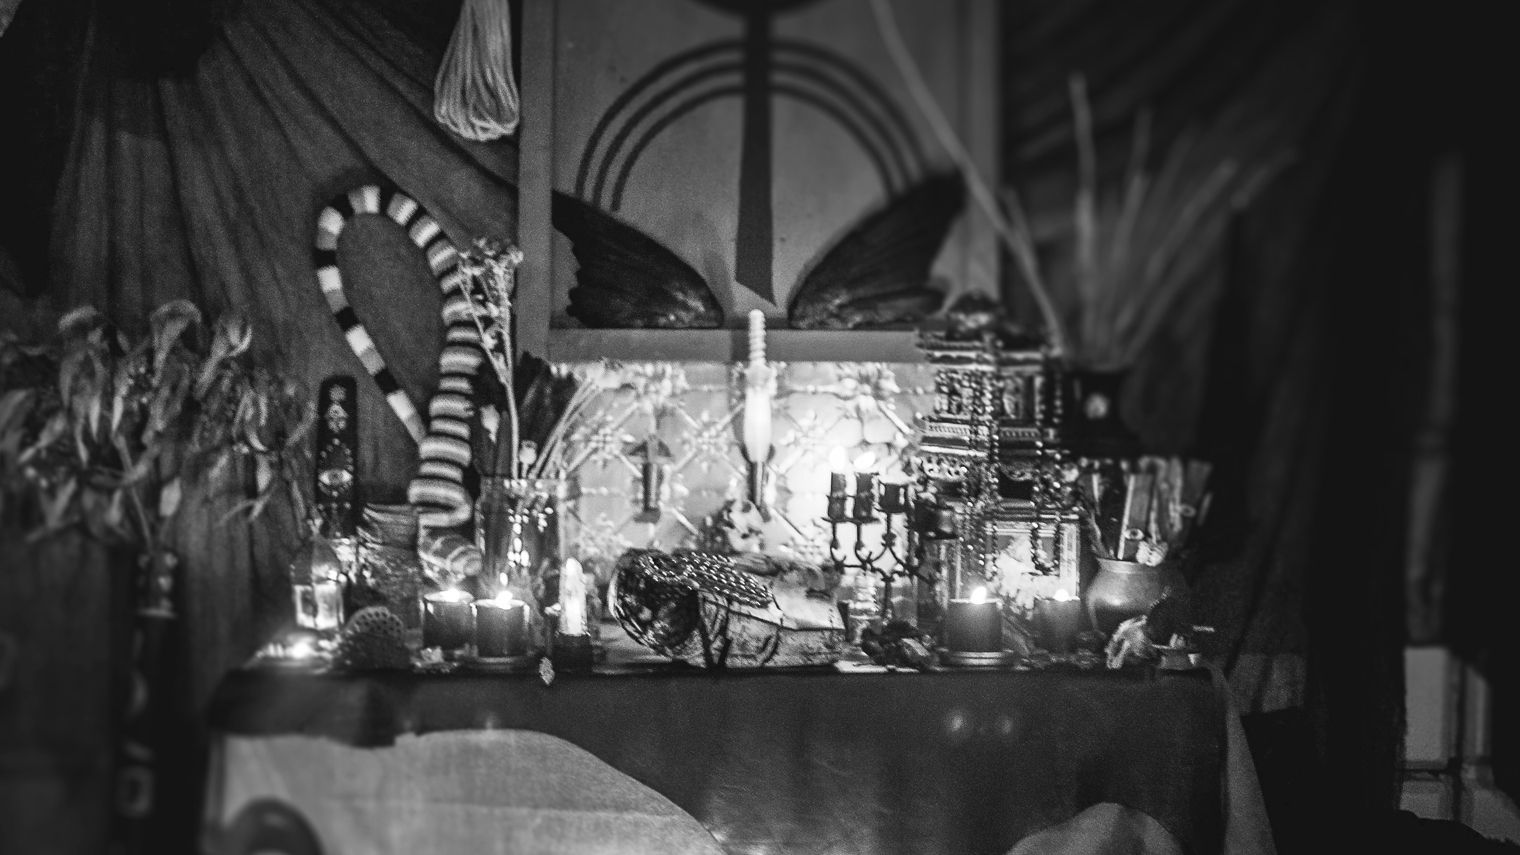 A slightly blurred image of a shrine with candles, flowers in vases and other oddities.